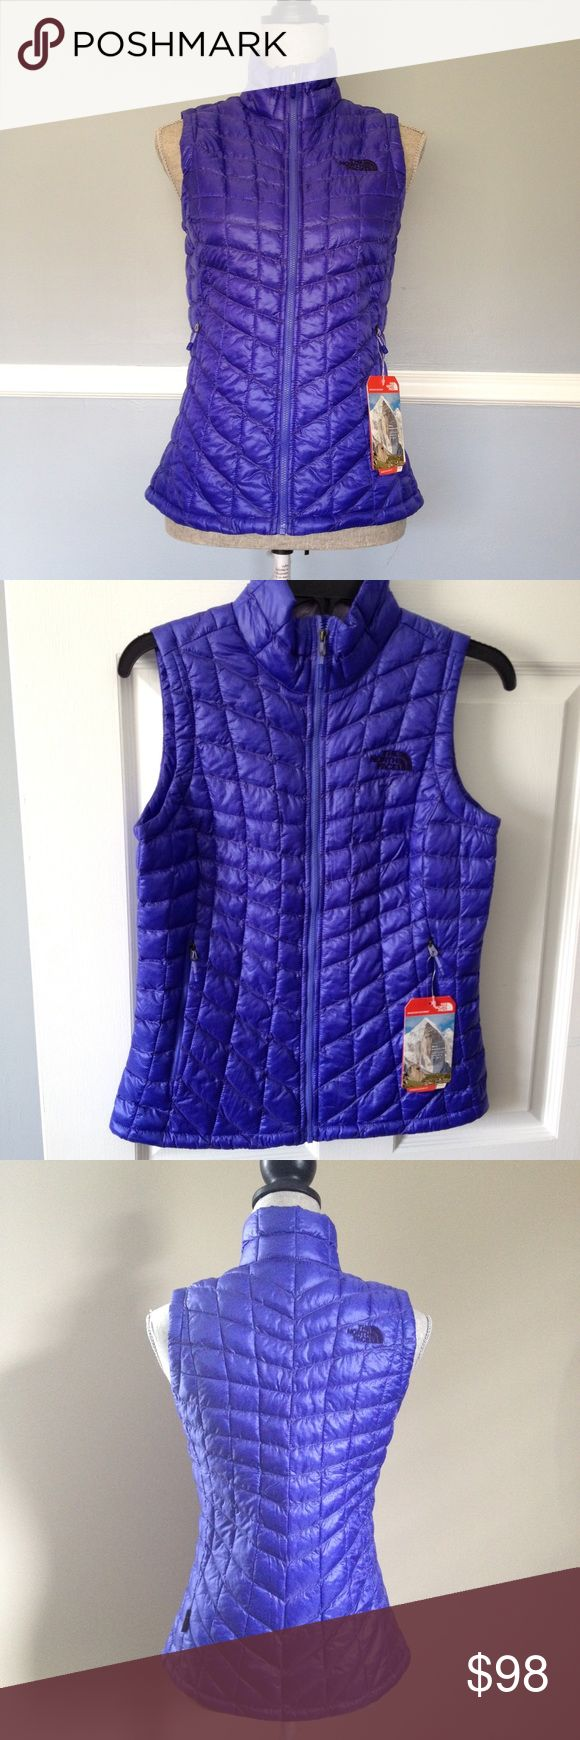 North Face Thermoball Vest NWT- Starry Purple North Face Jackets & Coats Vests